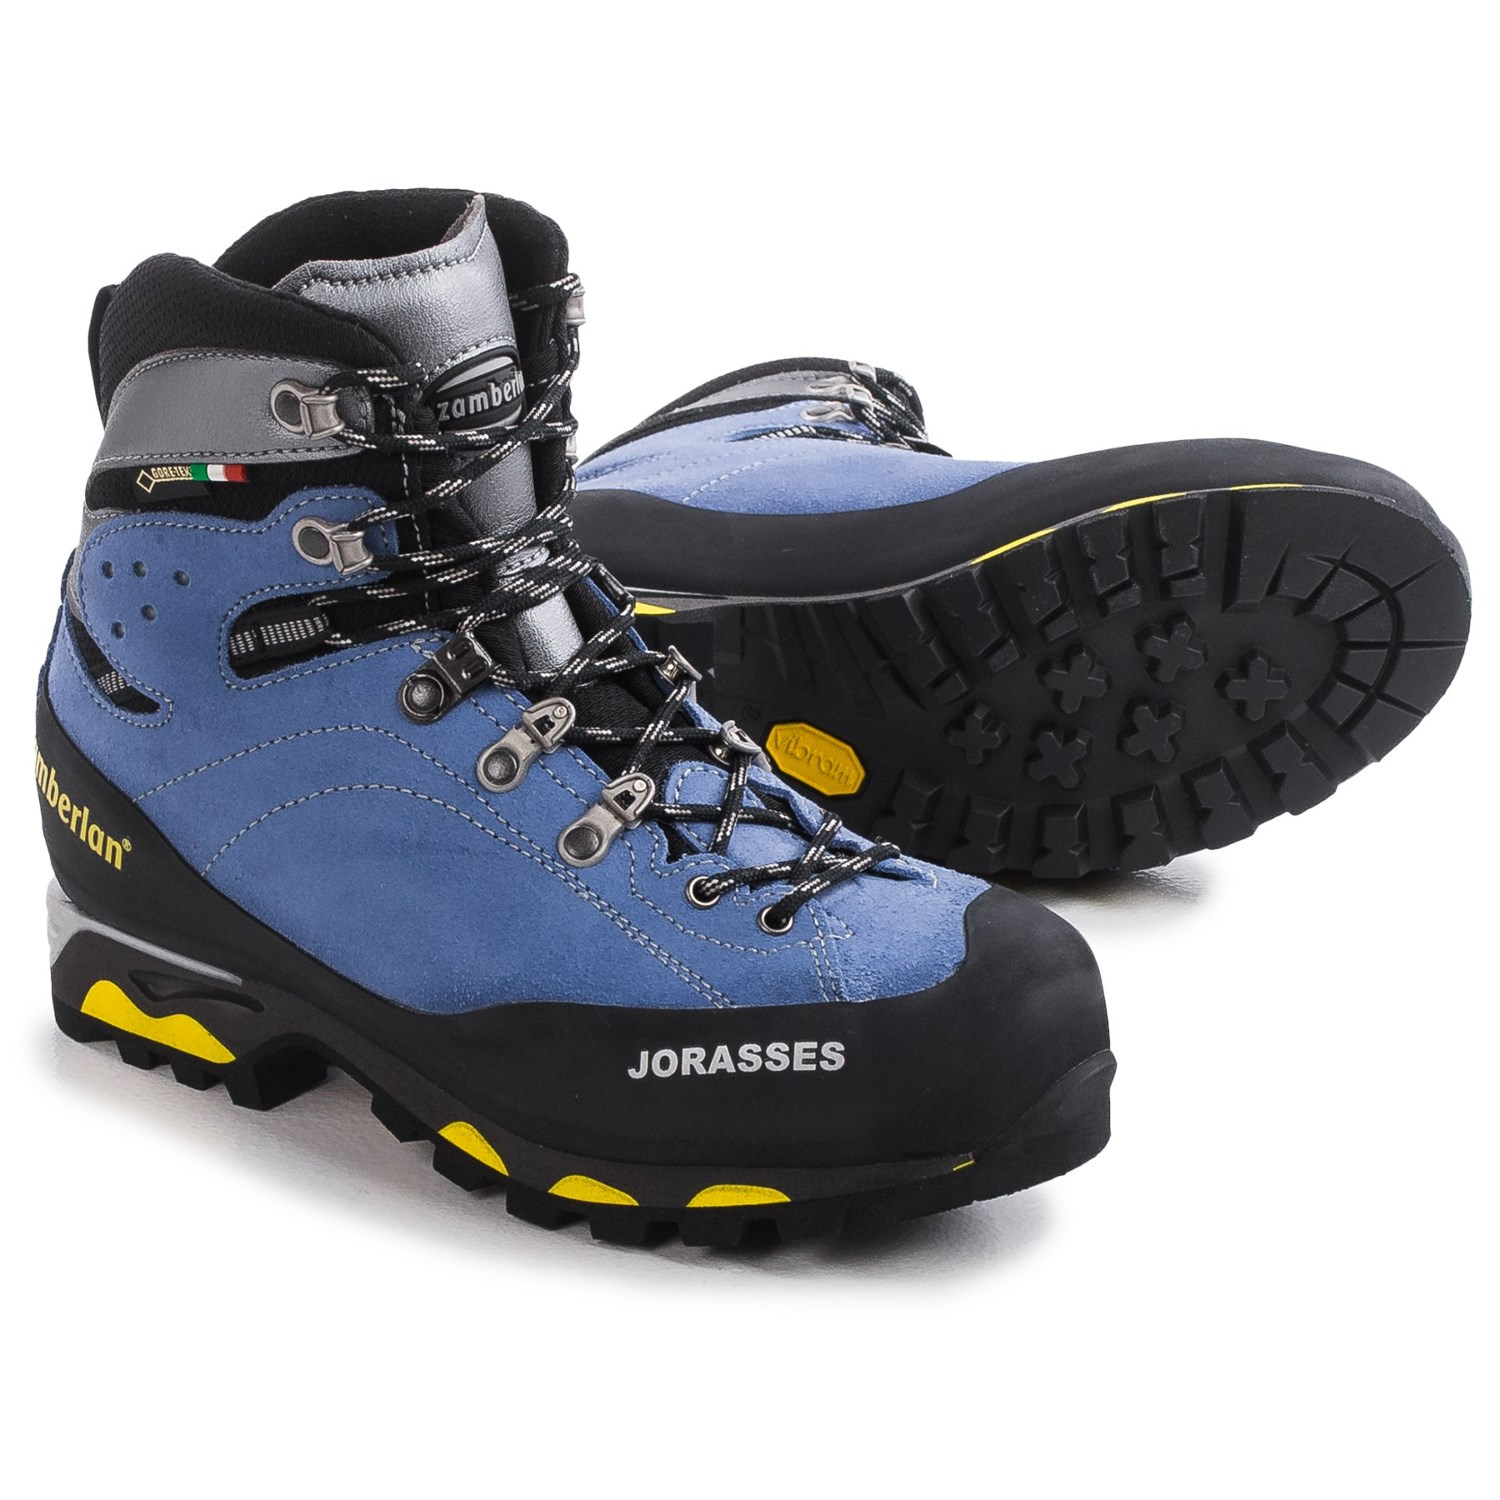 Zamberlan Jorasses Gore Tex 174 Rr Mountaineering Boots For